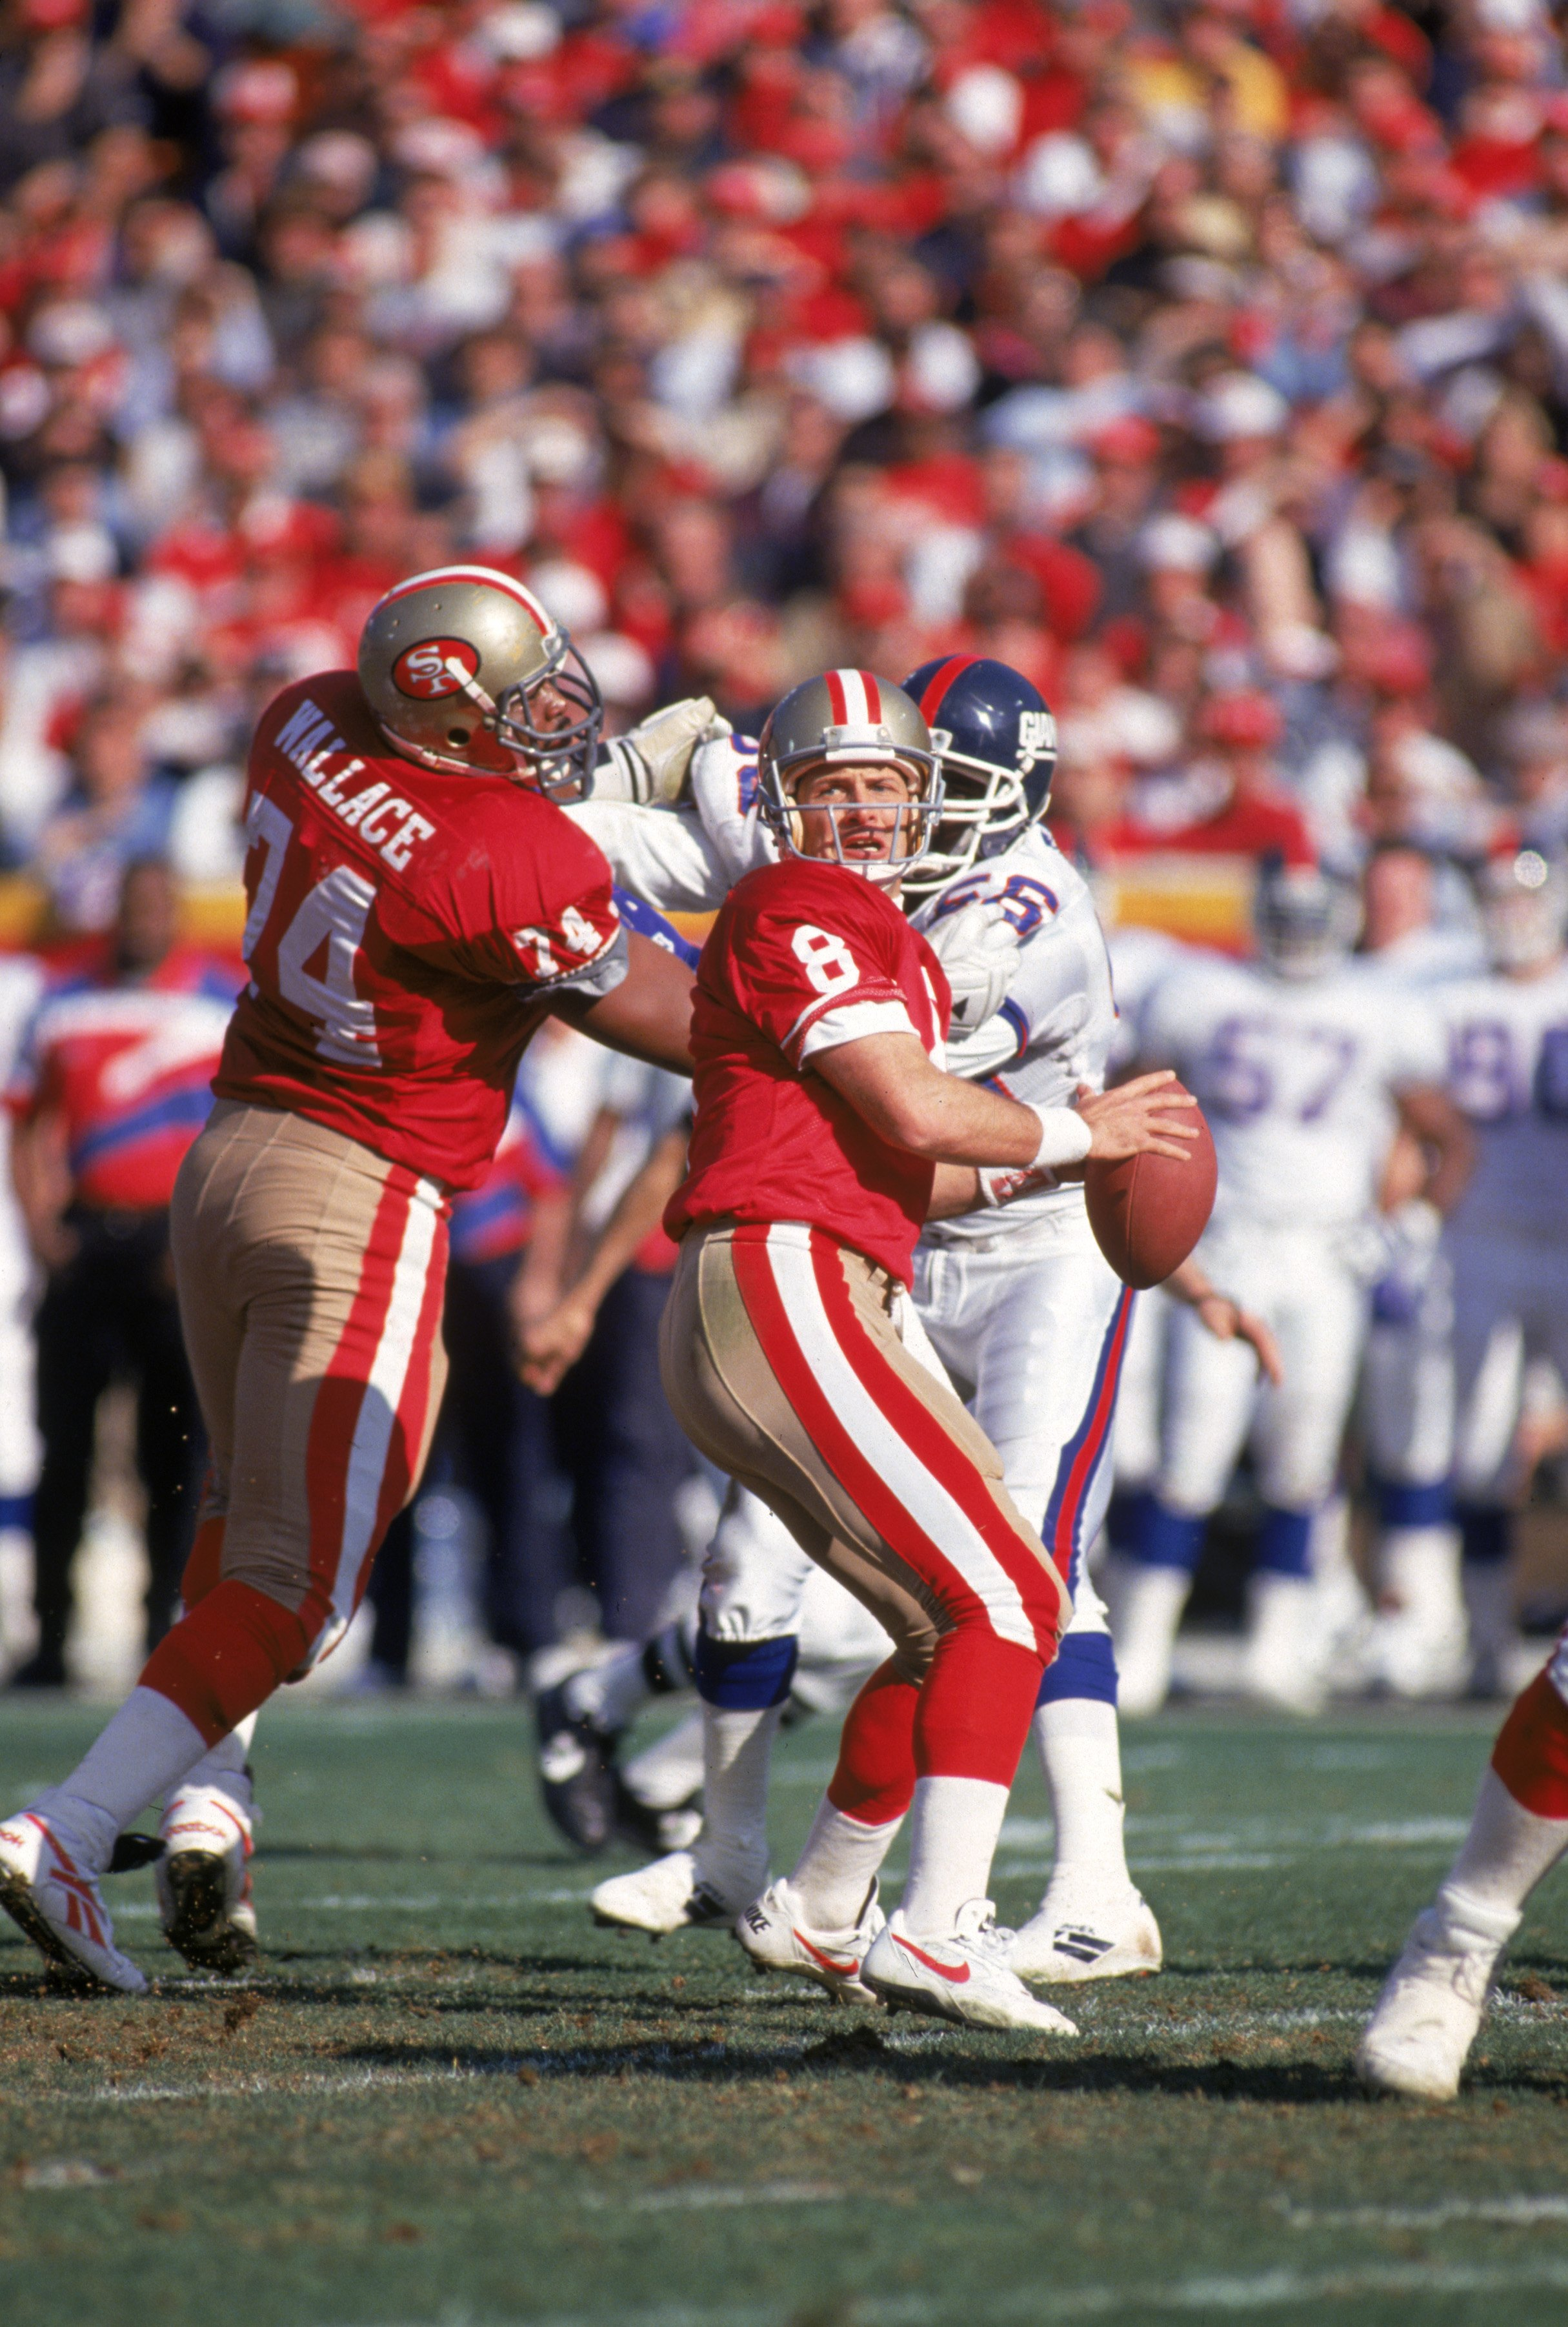 SAN FRANCISCO - JANUARY 15:  Quarterback Steve Young #8 of the San Francisco 49ers drops back to pass during the 1993 NFC Divisional Playoff game against the New York Giants at Candlestick Park on January 15, 1994 in San Francisco, California.  The 49ers